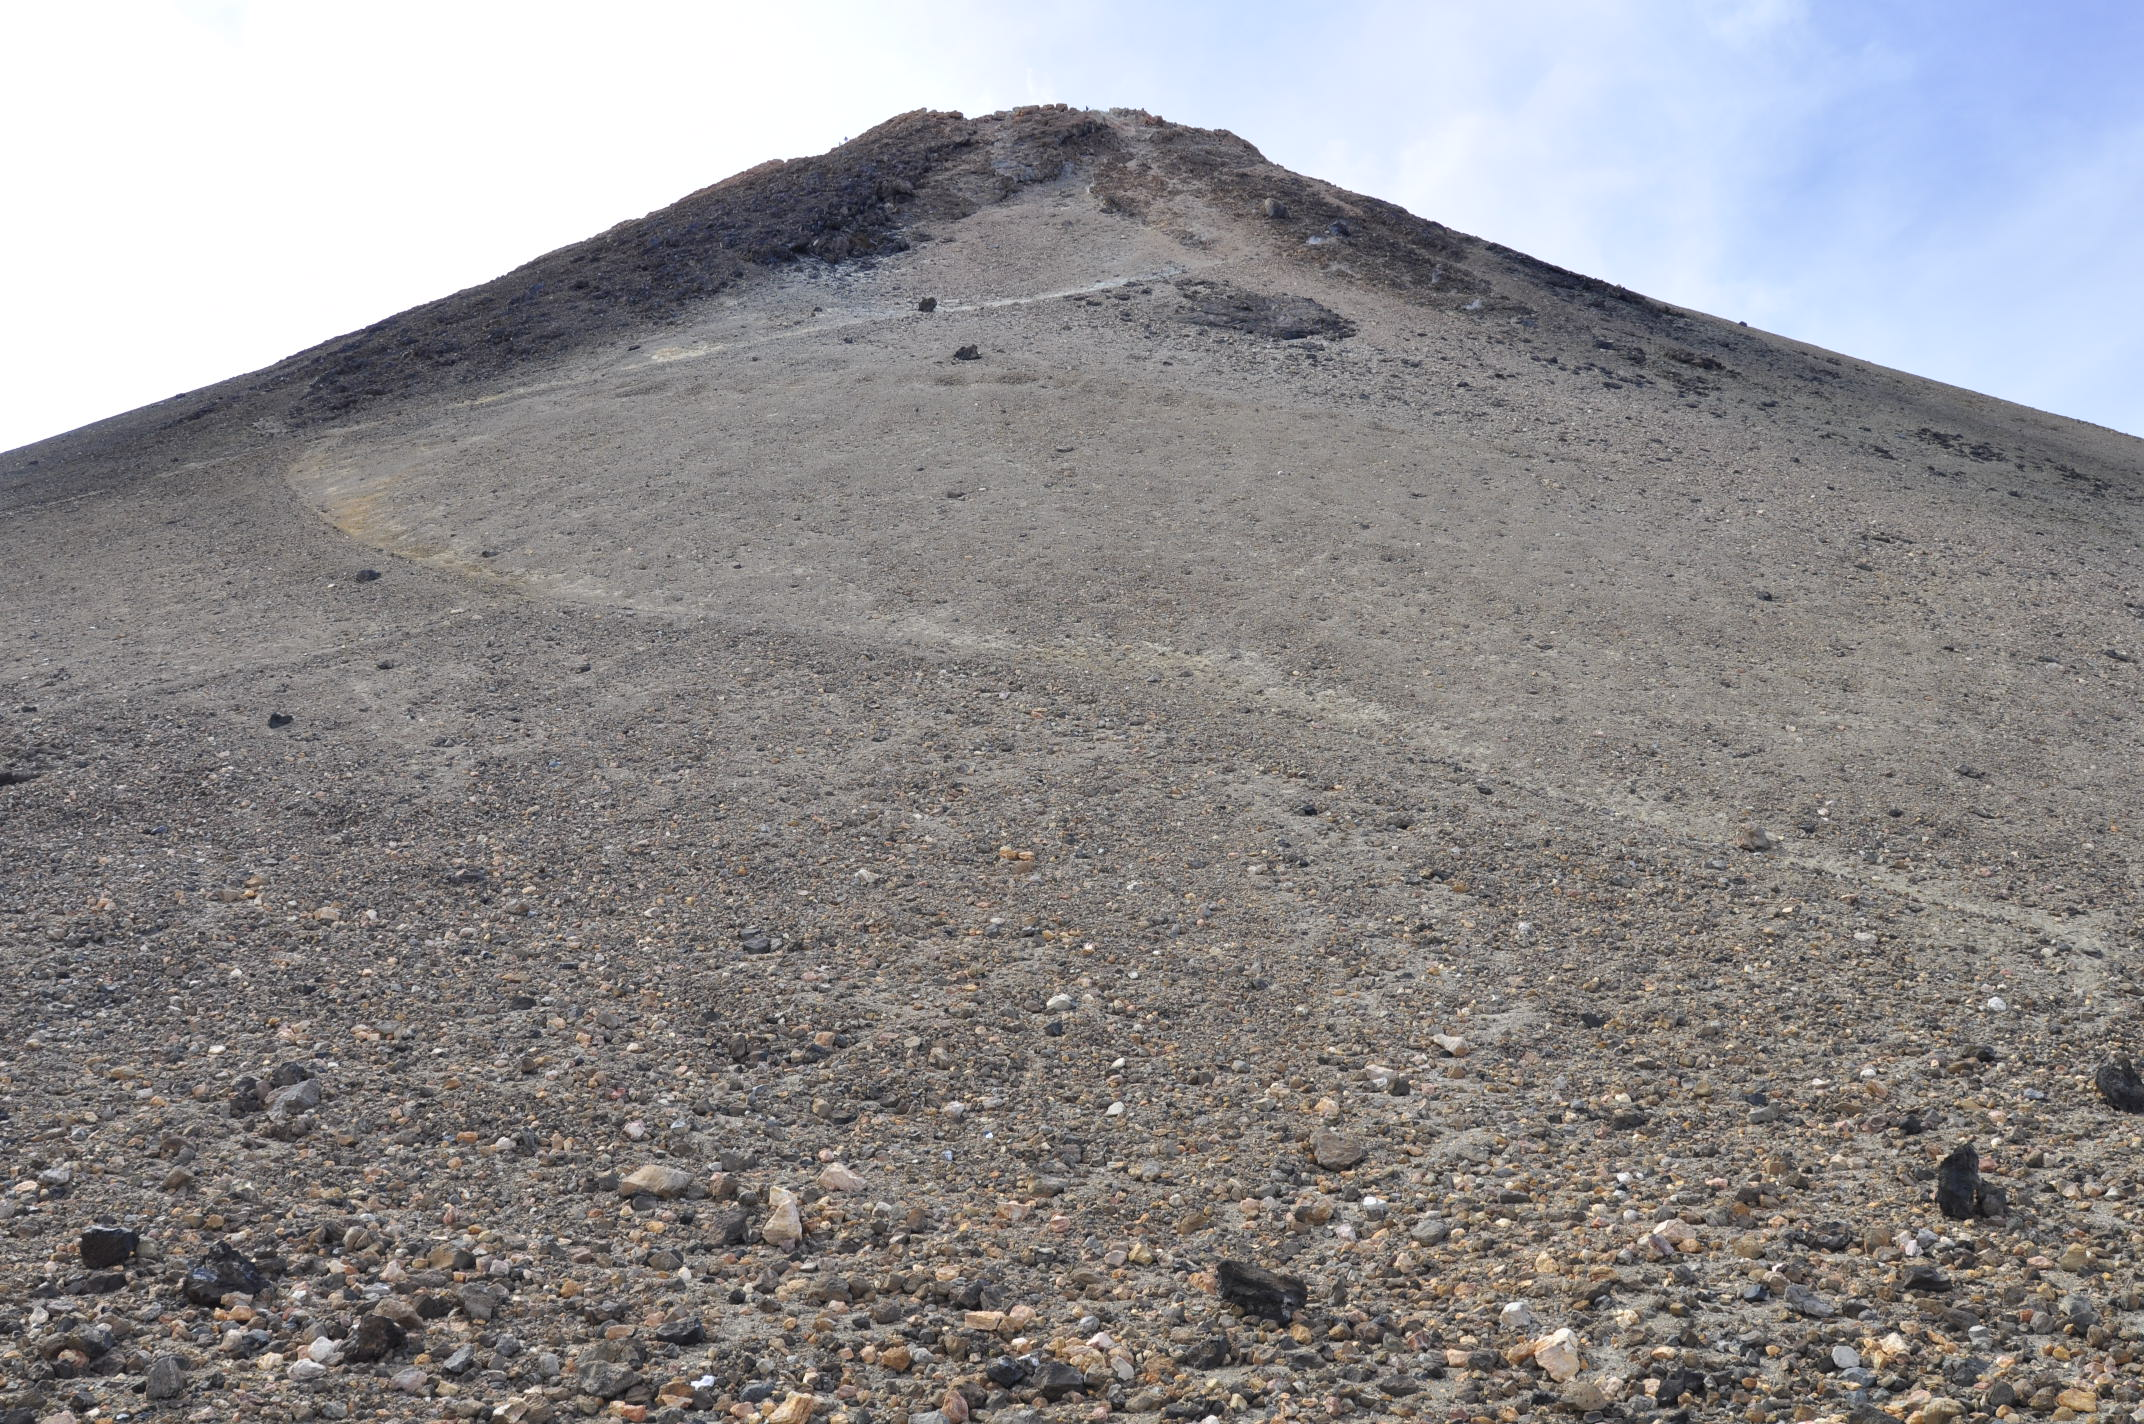 The top summit, seen from footpath near the cable car station. Only a limited number of passes to the top are awarded each day.